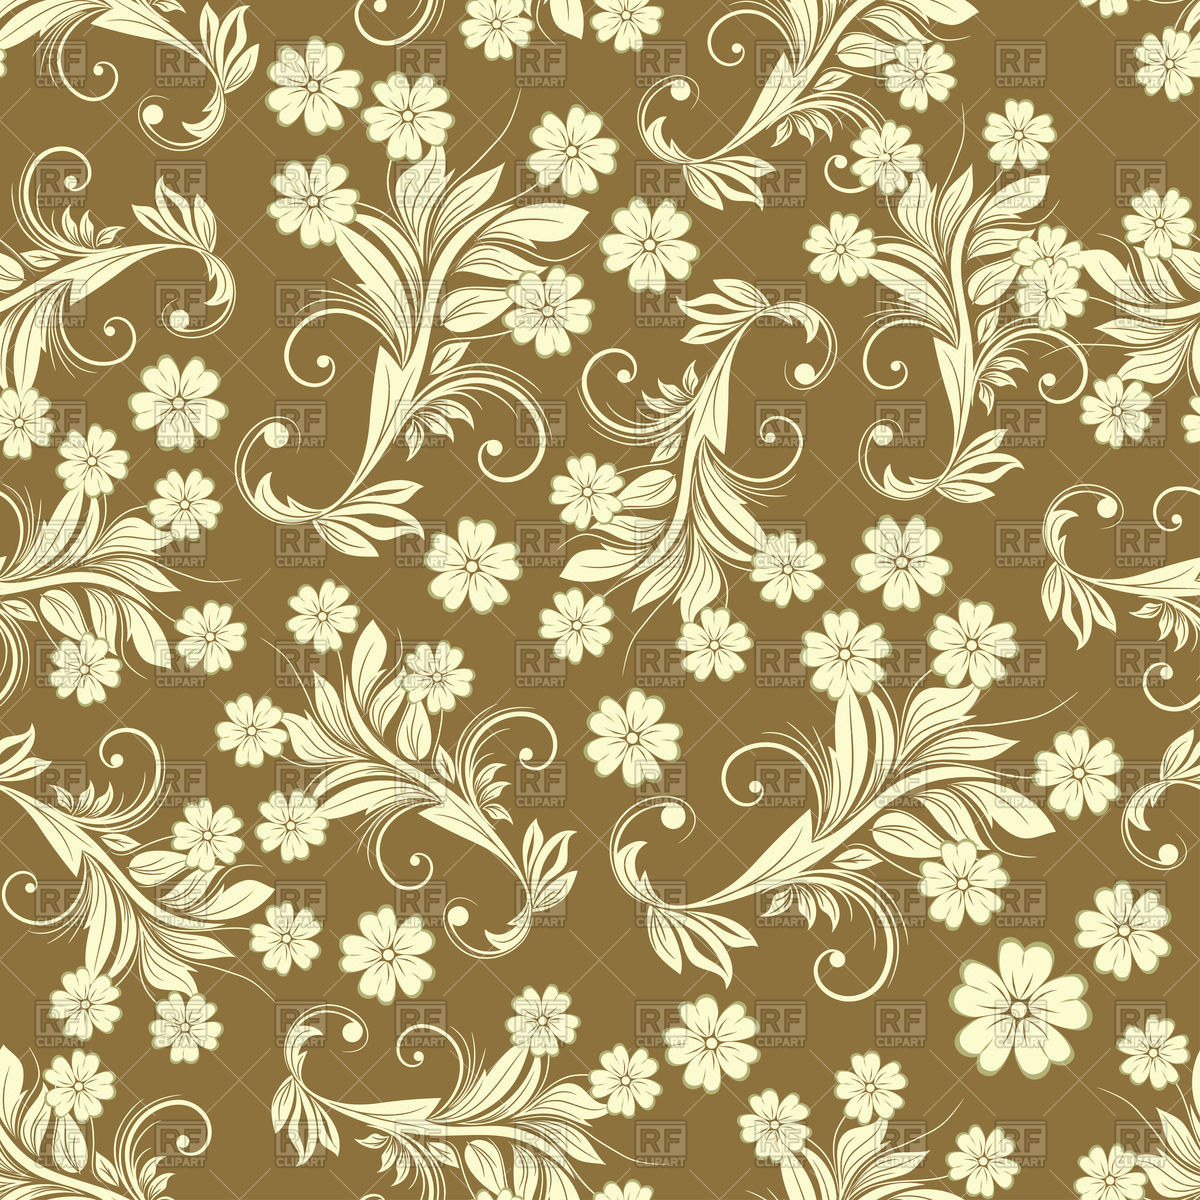 1200x1200 Seamless Brown Vintage Floral Pattern Vector Image Vector